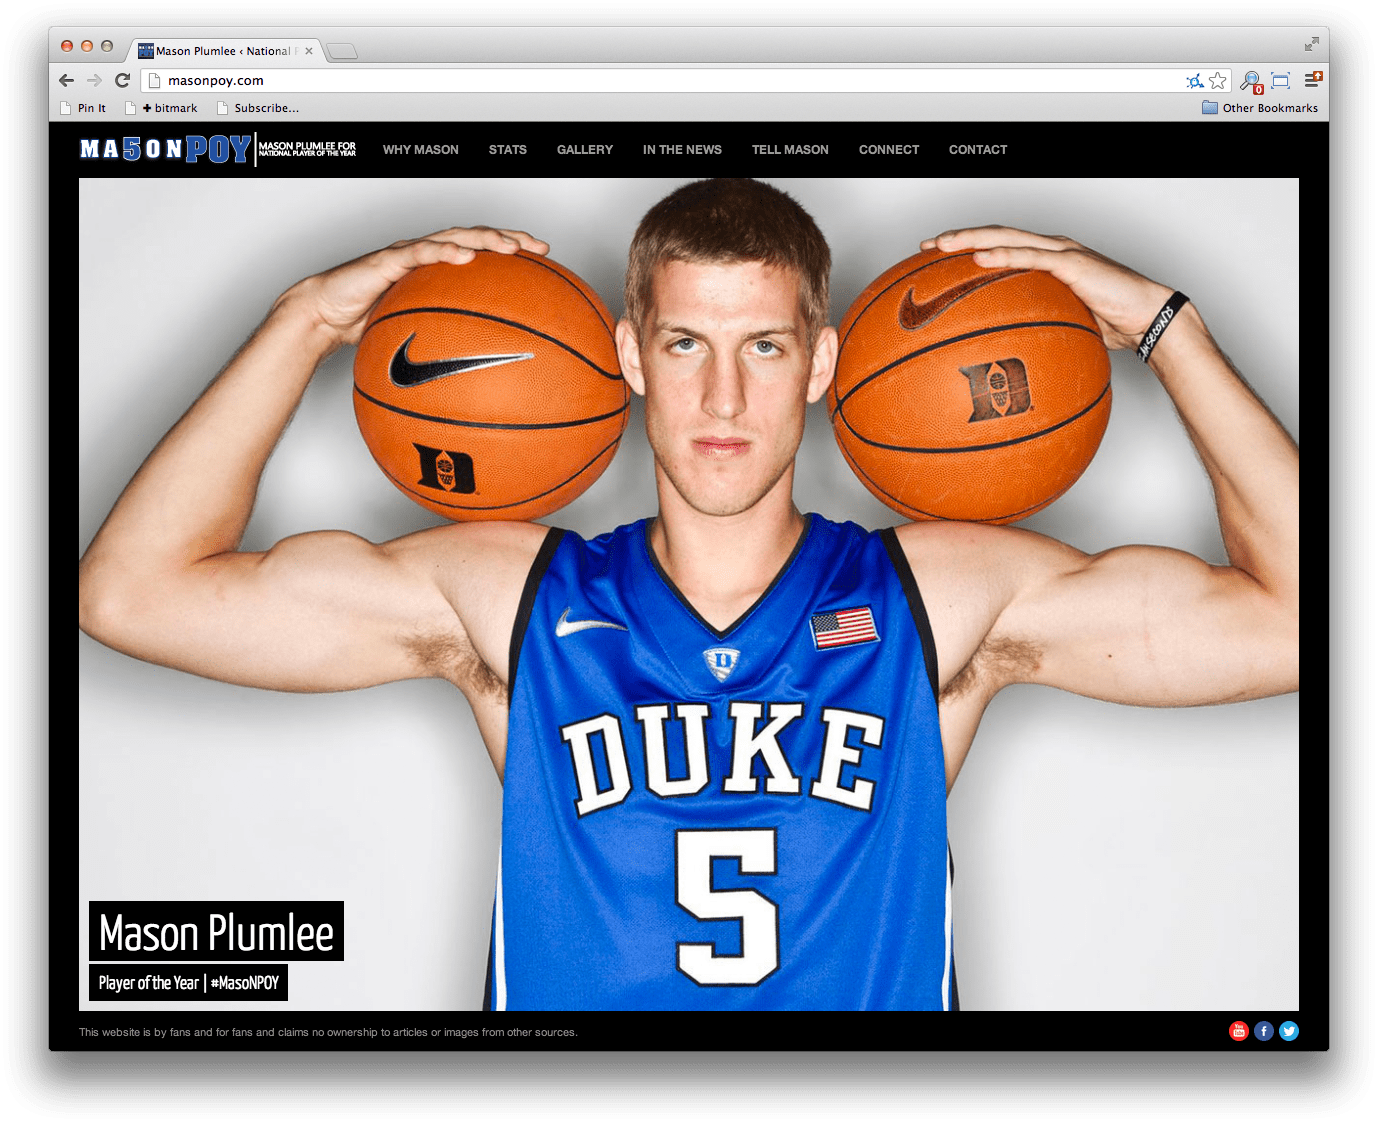 Mason Plumlee, Player of the Year